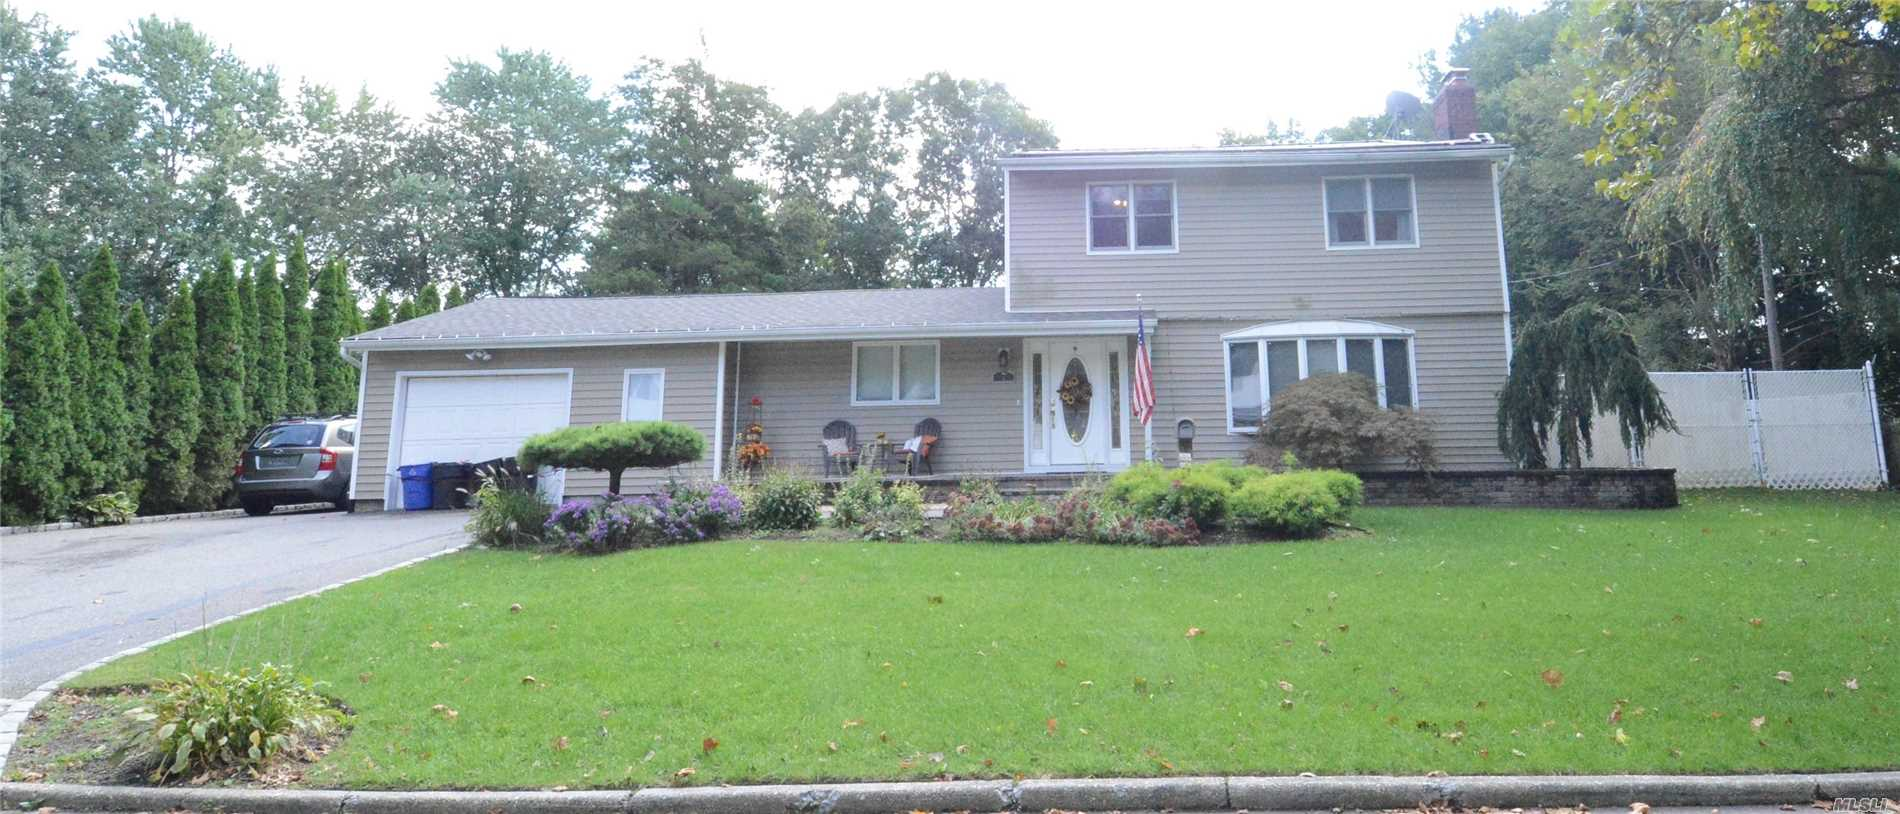 Photo of home for sale at 7 Corsa St, Dix Hills NY